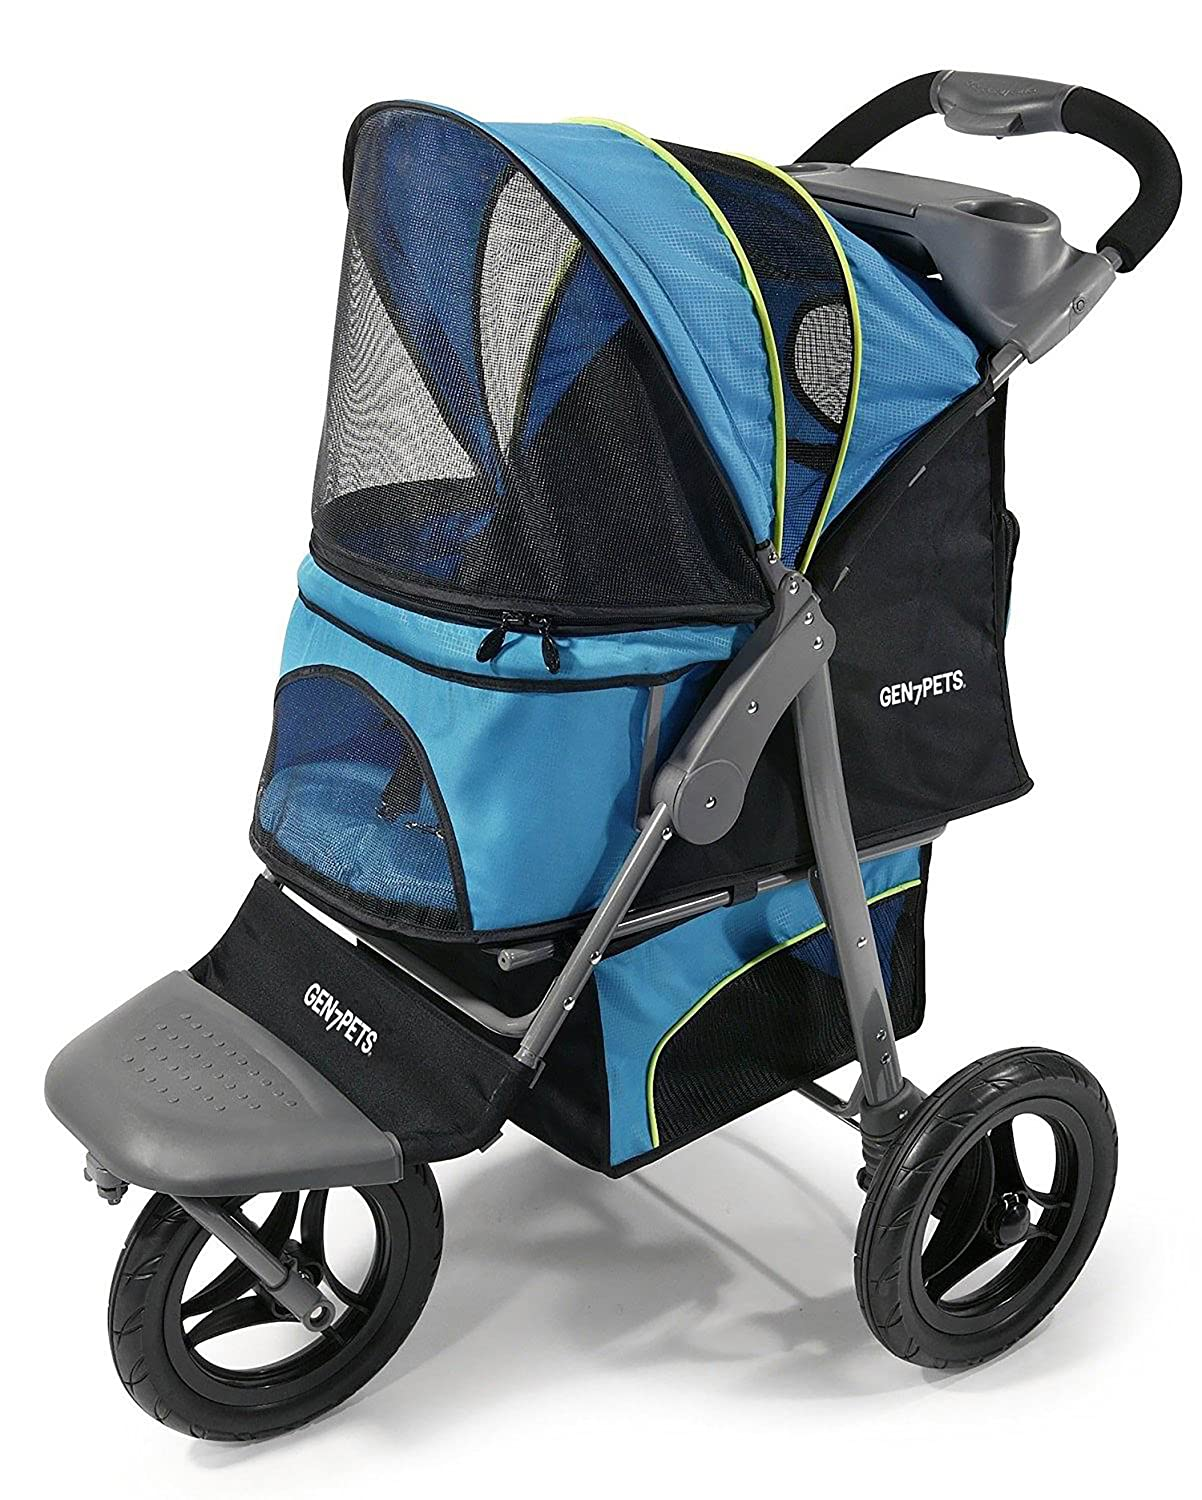 Gen7 Pets Jogger Stroller for Dogs and Cats